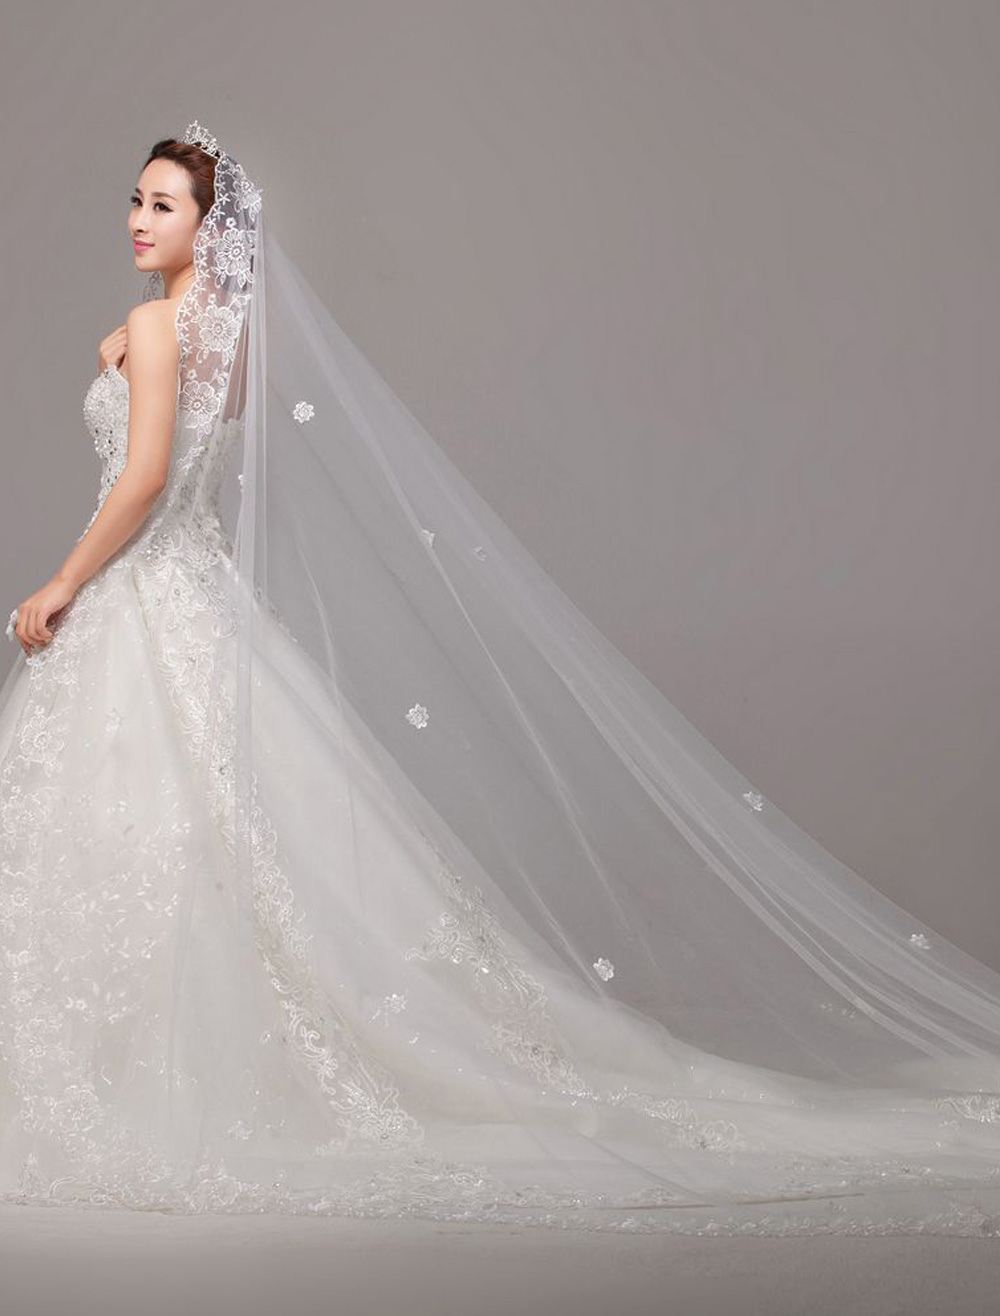 Luxuary Waterfall Lace Applique Edge Cathedral Wedding Veil In One-Tier